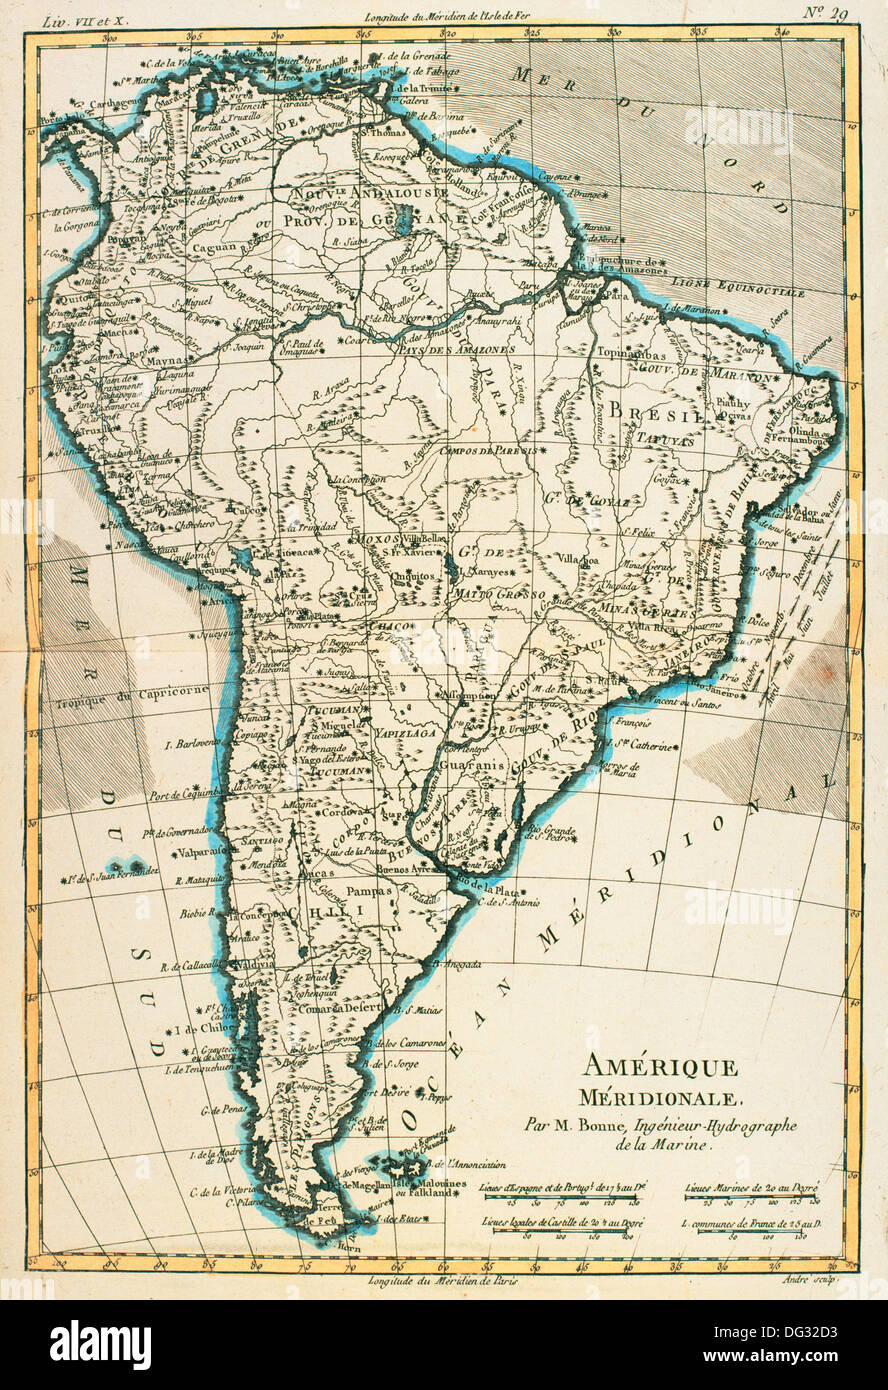 Map of South America circa 1760.  From Atlas de Toutes Les Parties Connues du Globe Terrestre by Cartographer Rigobert Bonne. - Stock Image